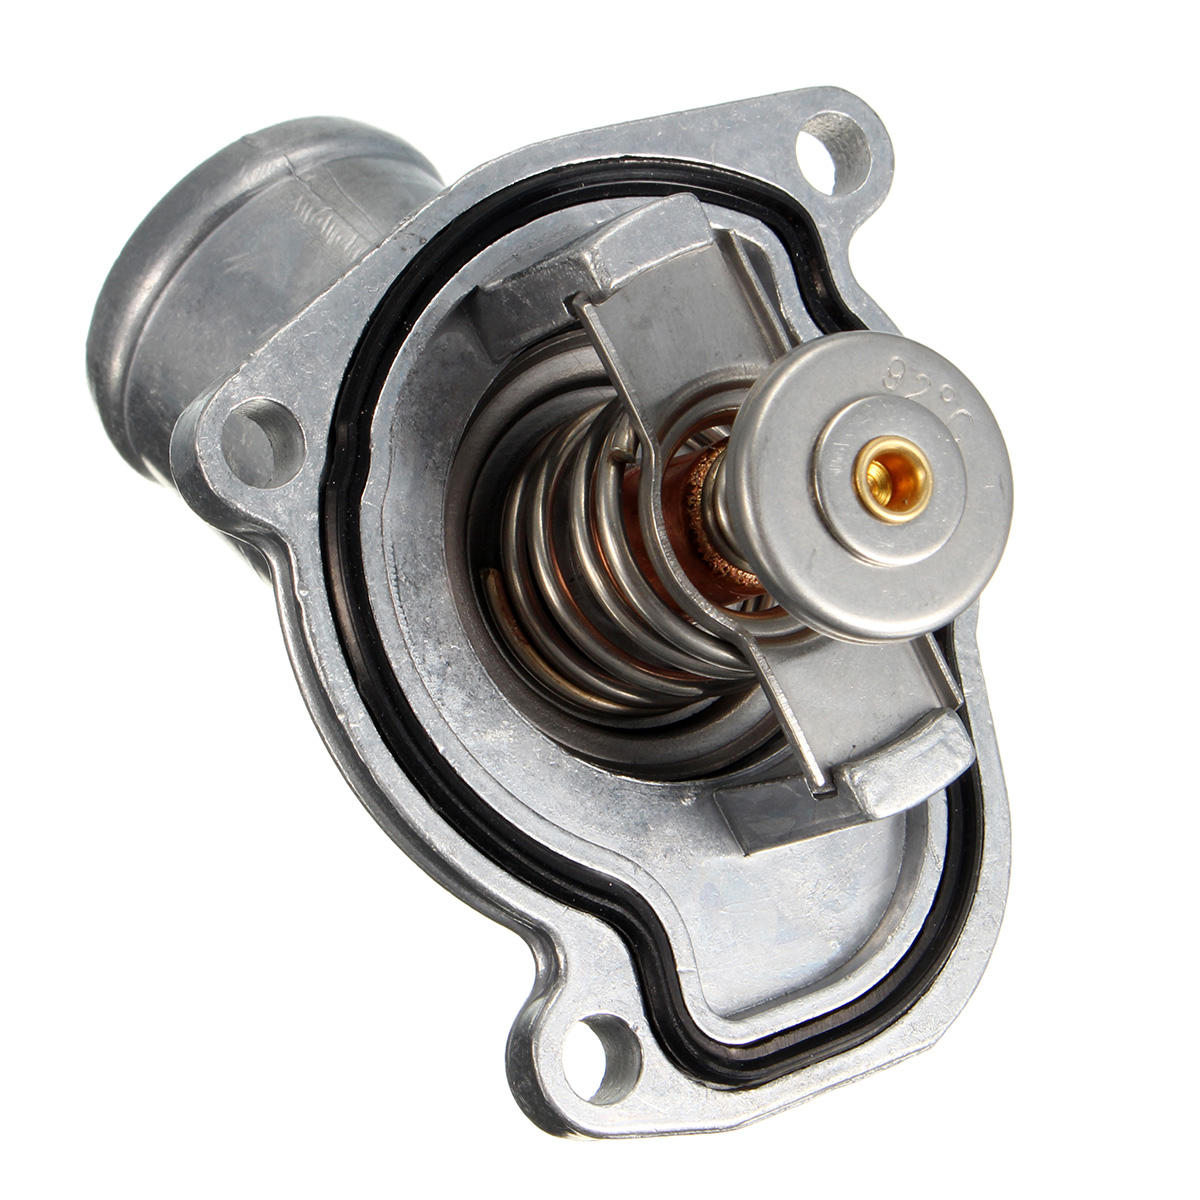 New engine coolant thermostat kit for opel vauxhall corsa